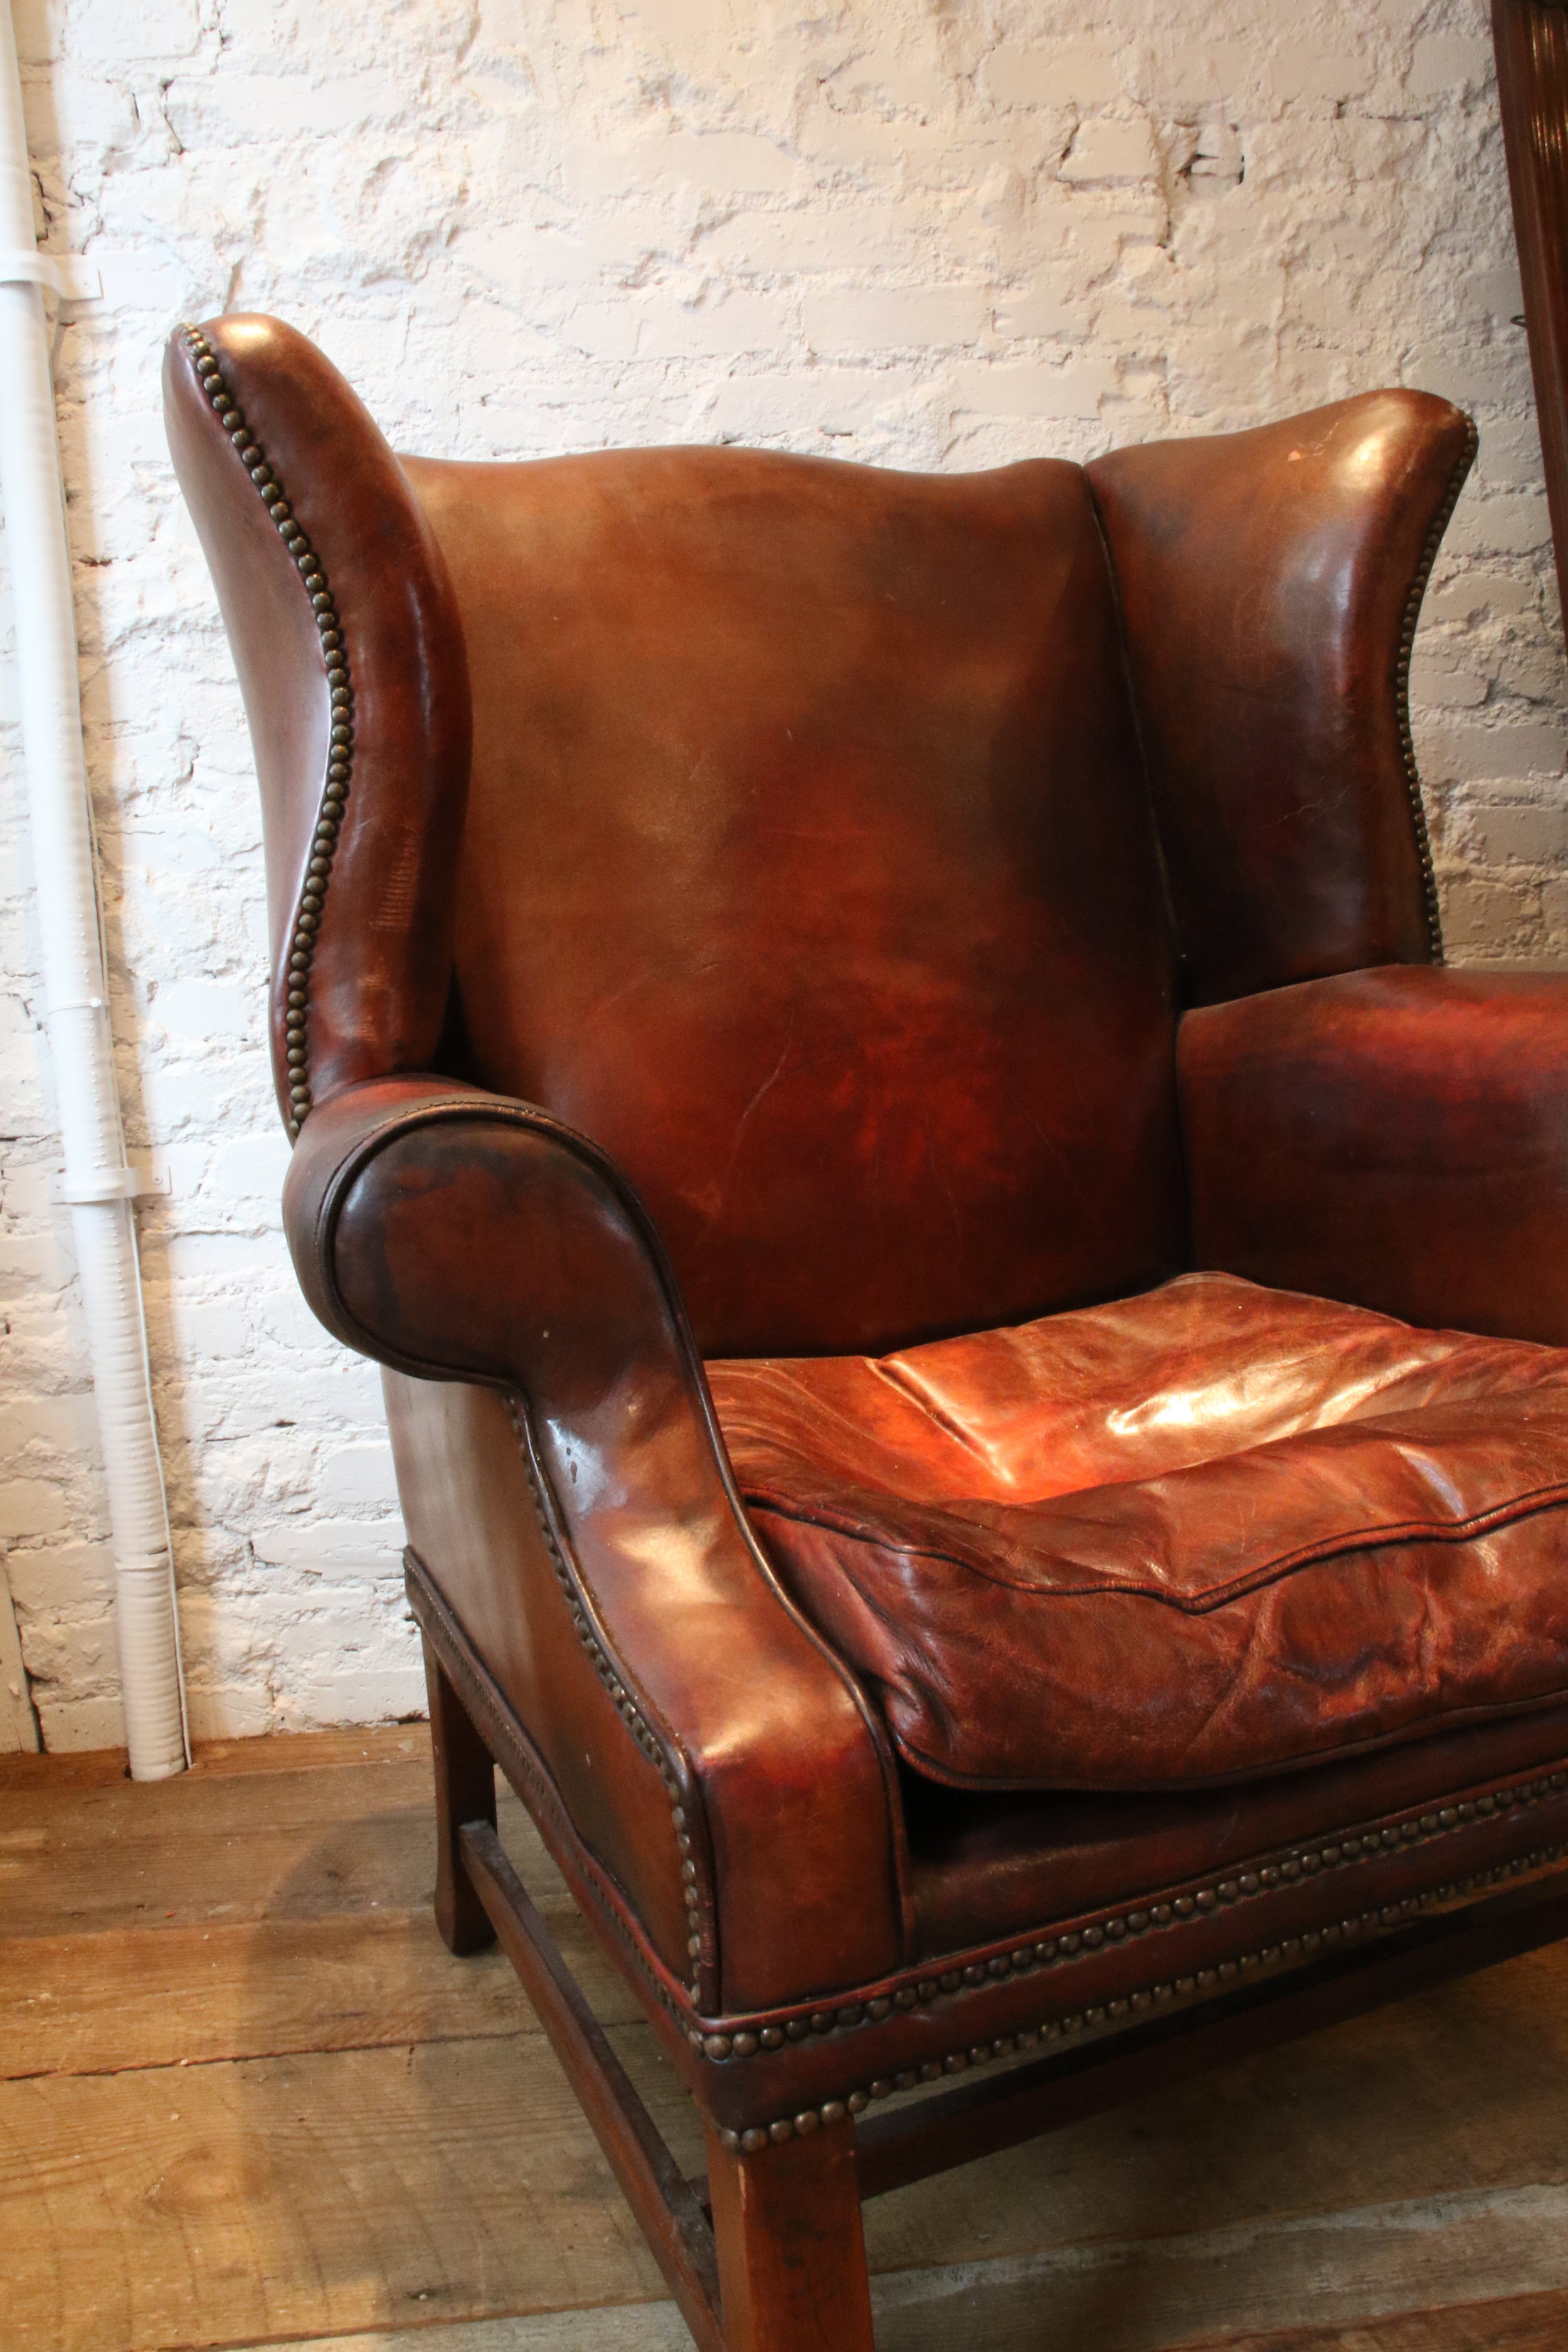 "Antique Patinated Leather Chair, Original Upholstery   42"" H x 24"" D x 33"" W  $8000   To order please call us at 202-234-5926 or email at boutique@darrylcarter.com. Please note pricing excludes taxes and shipping."